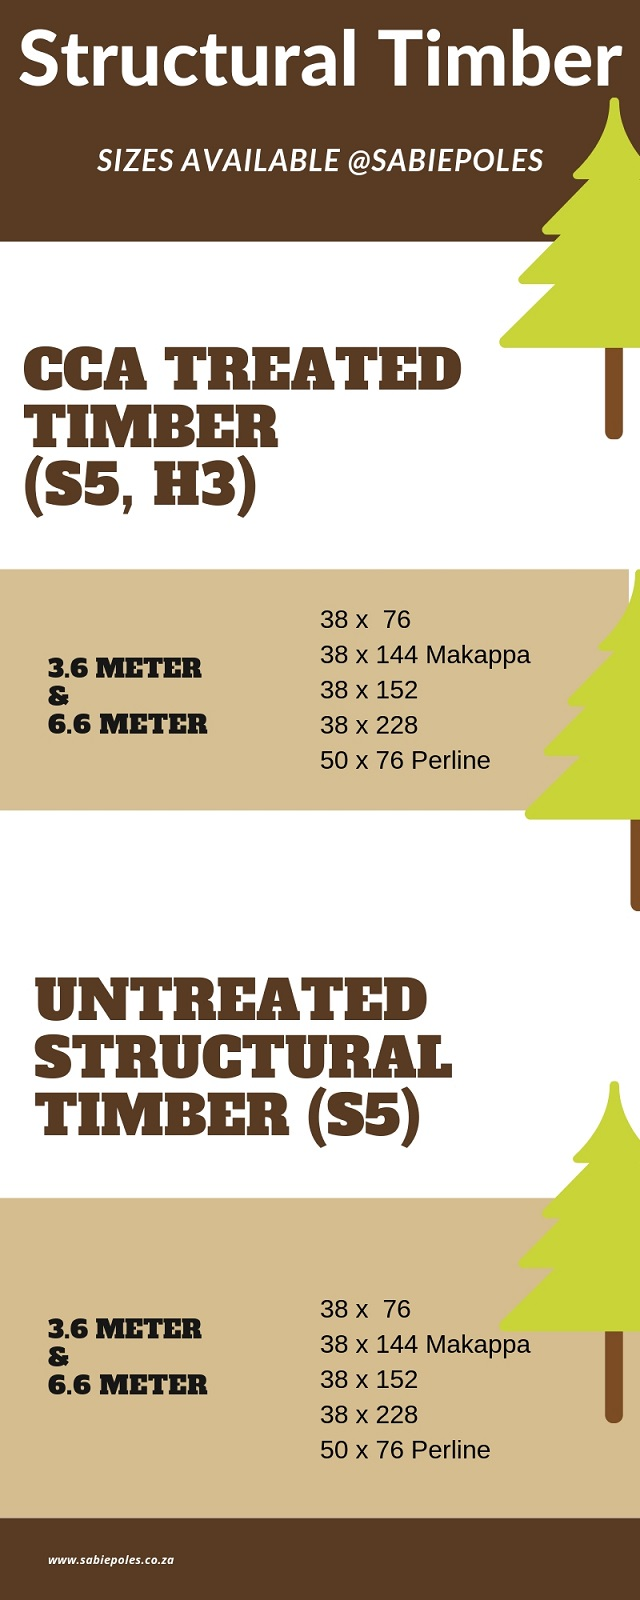 CCA Treated Timber Building Materials